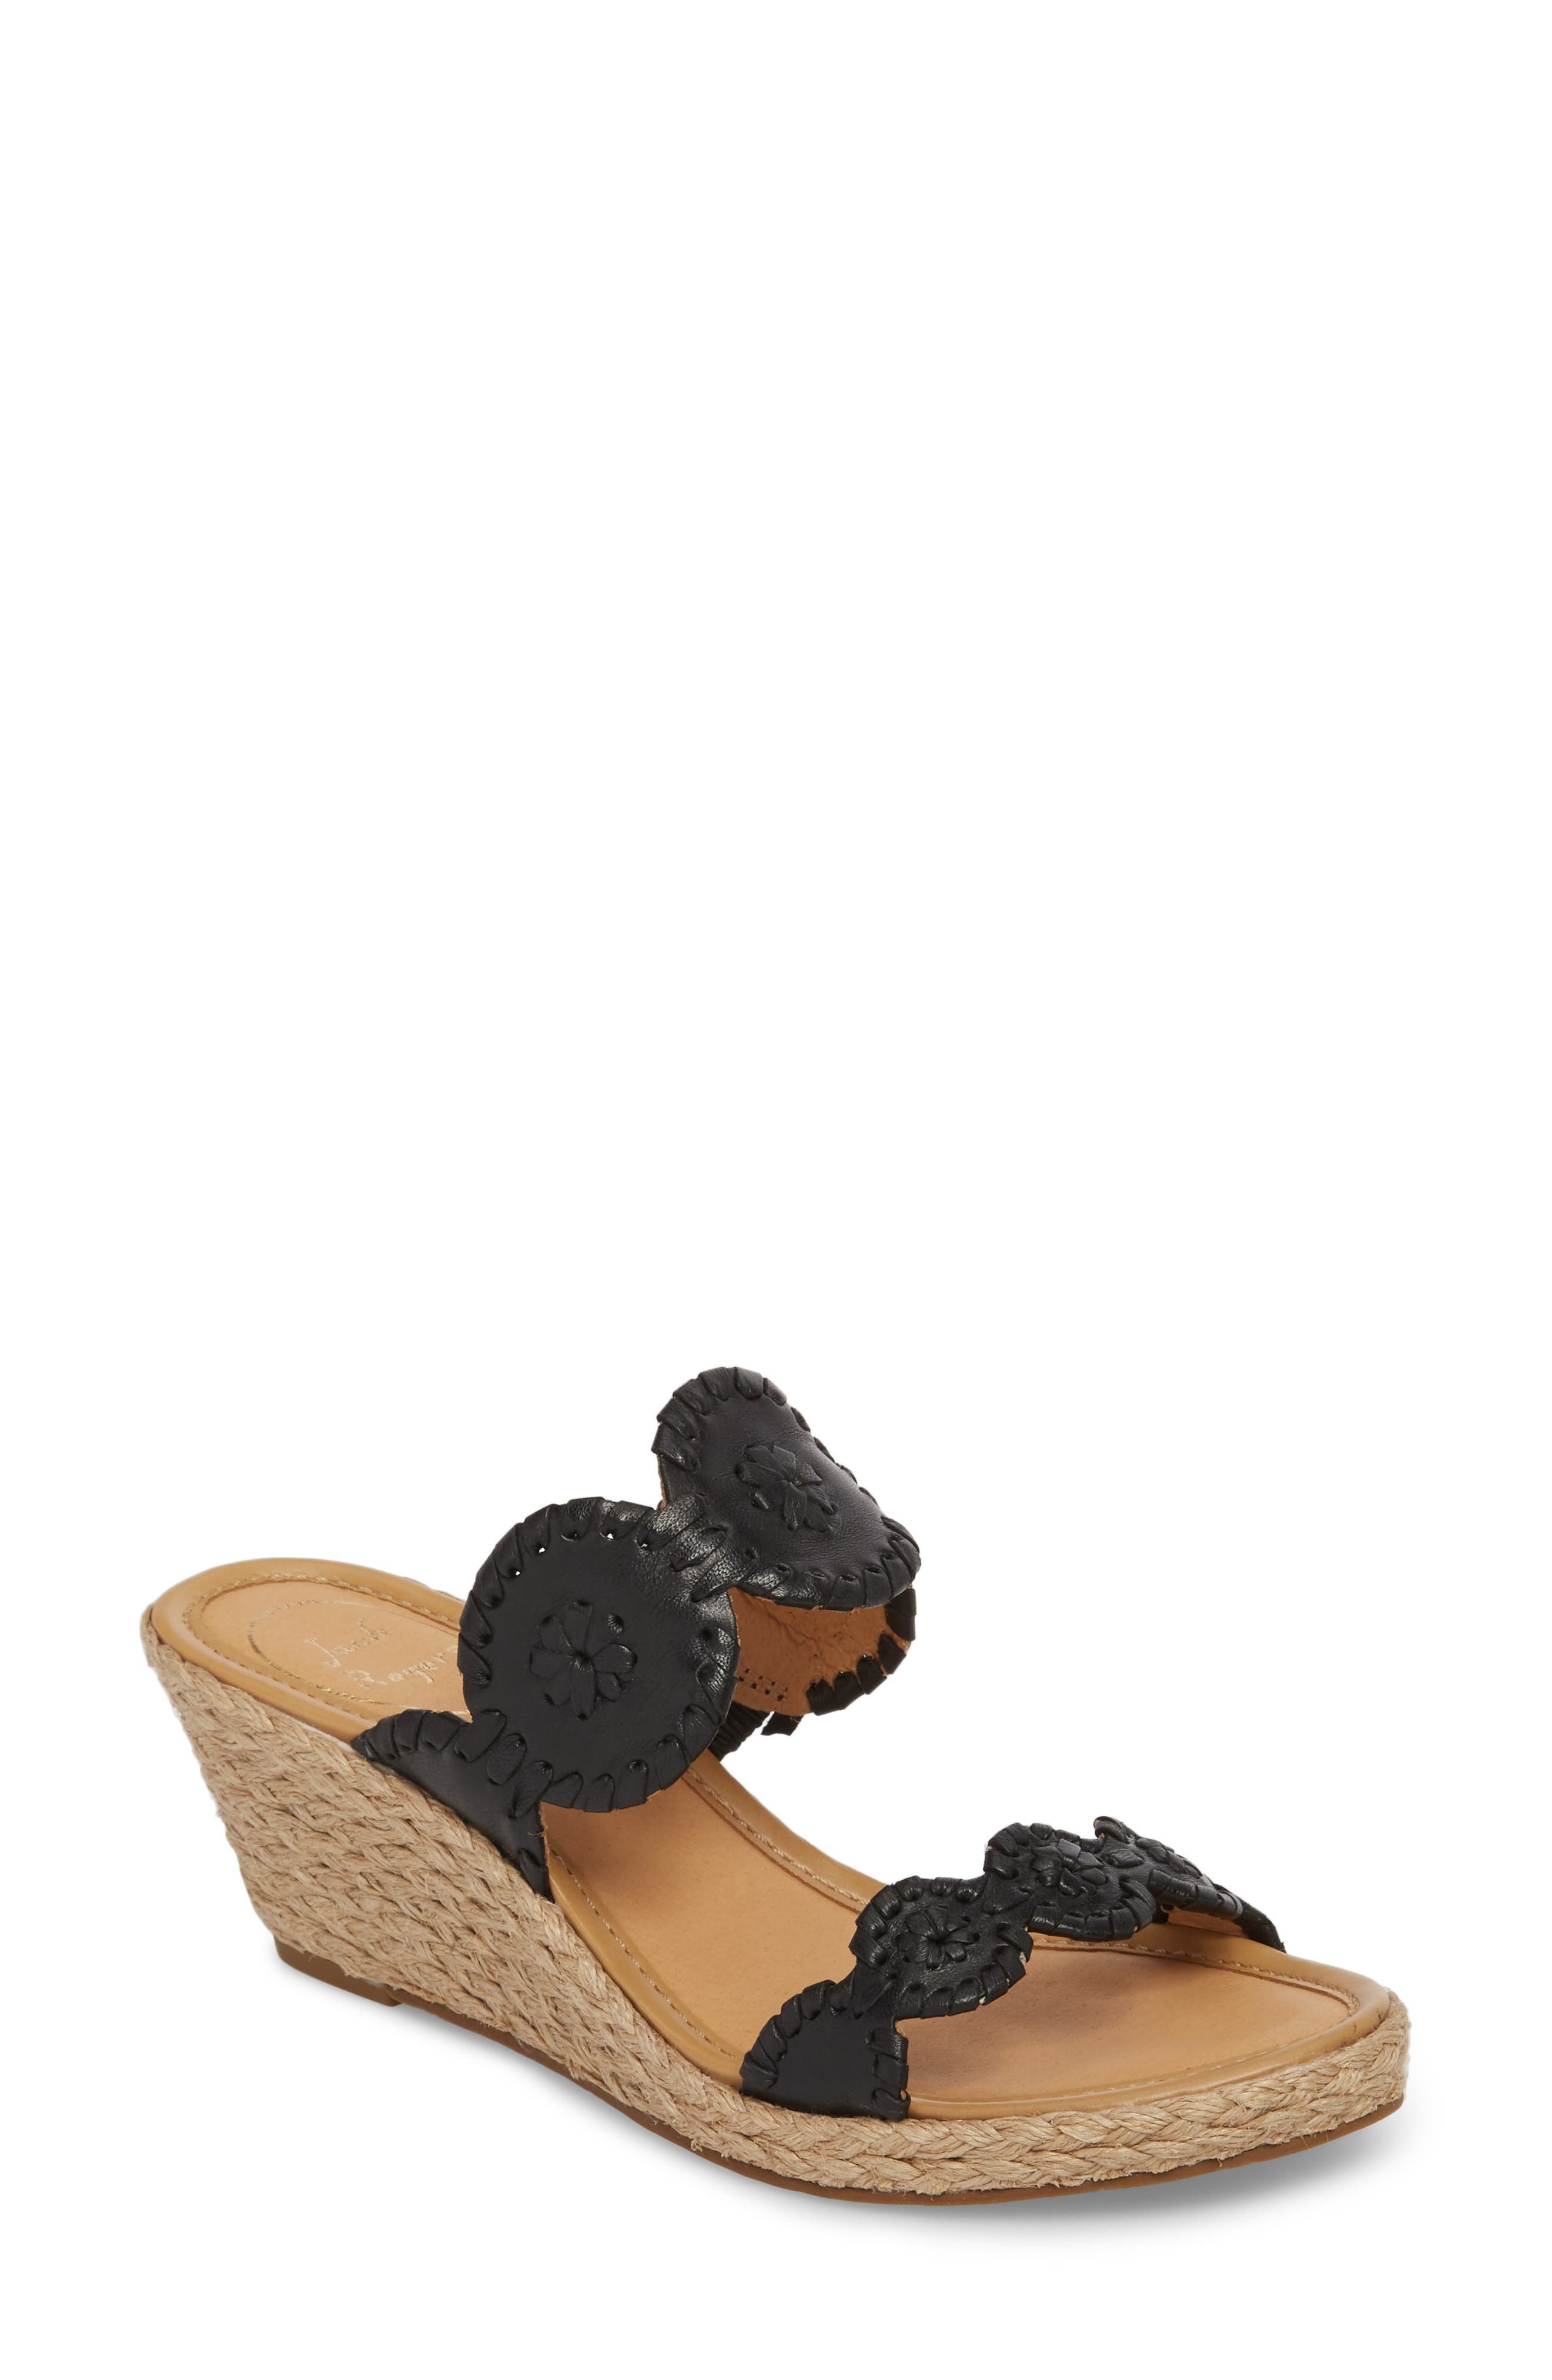 JACK ROGERS, 'Shelby' Whipstitched Wedge Sandal, Main thumbnail 1, color, 001